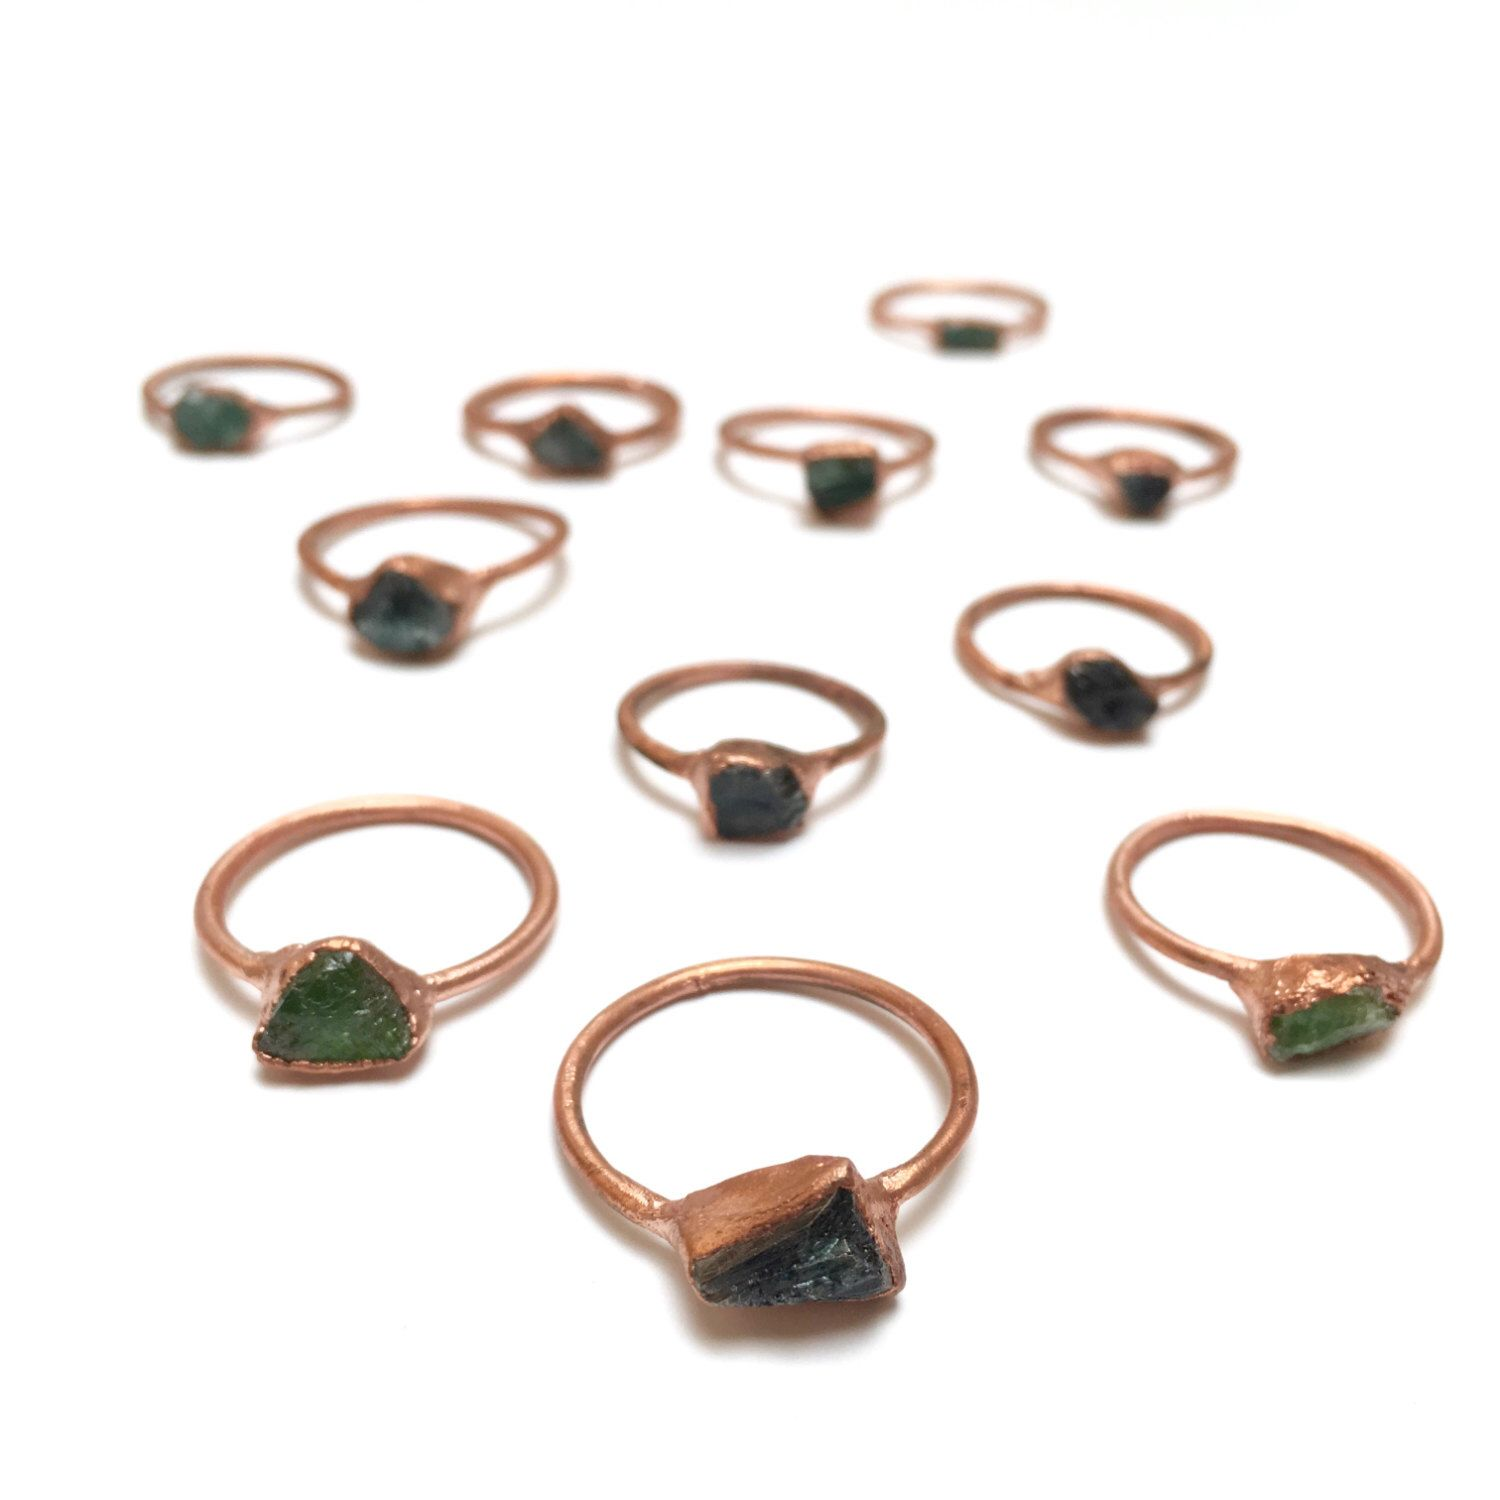 Green Tourmaline and Copper Electroformed Rings October